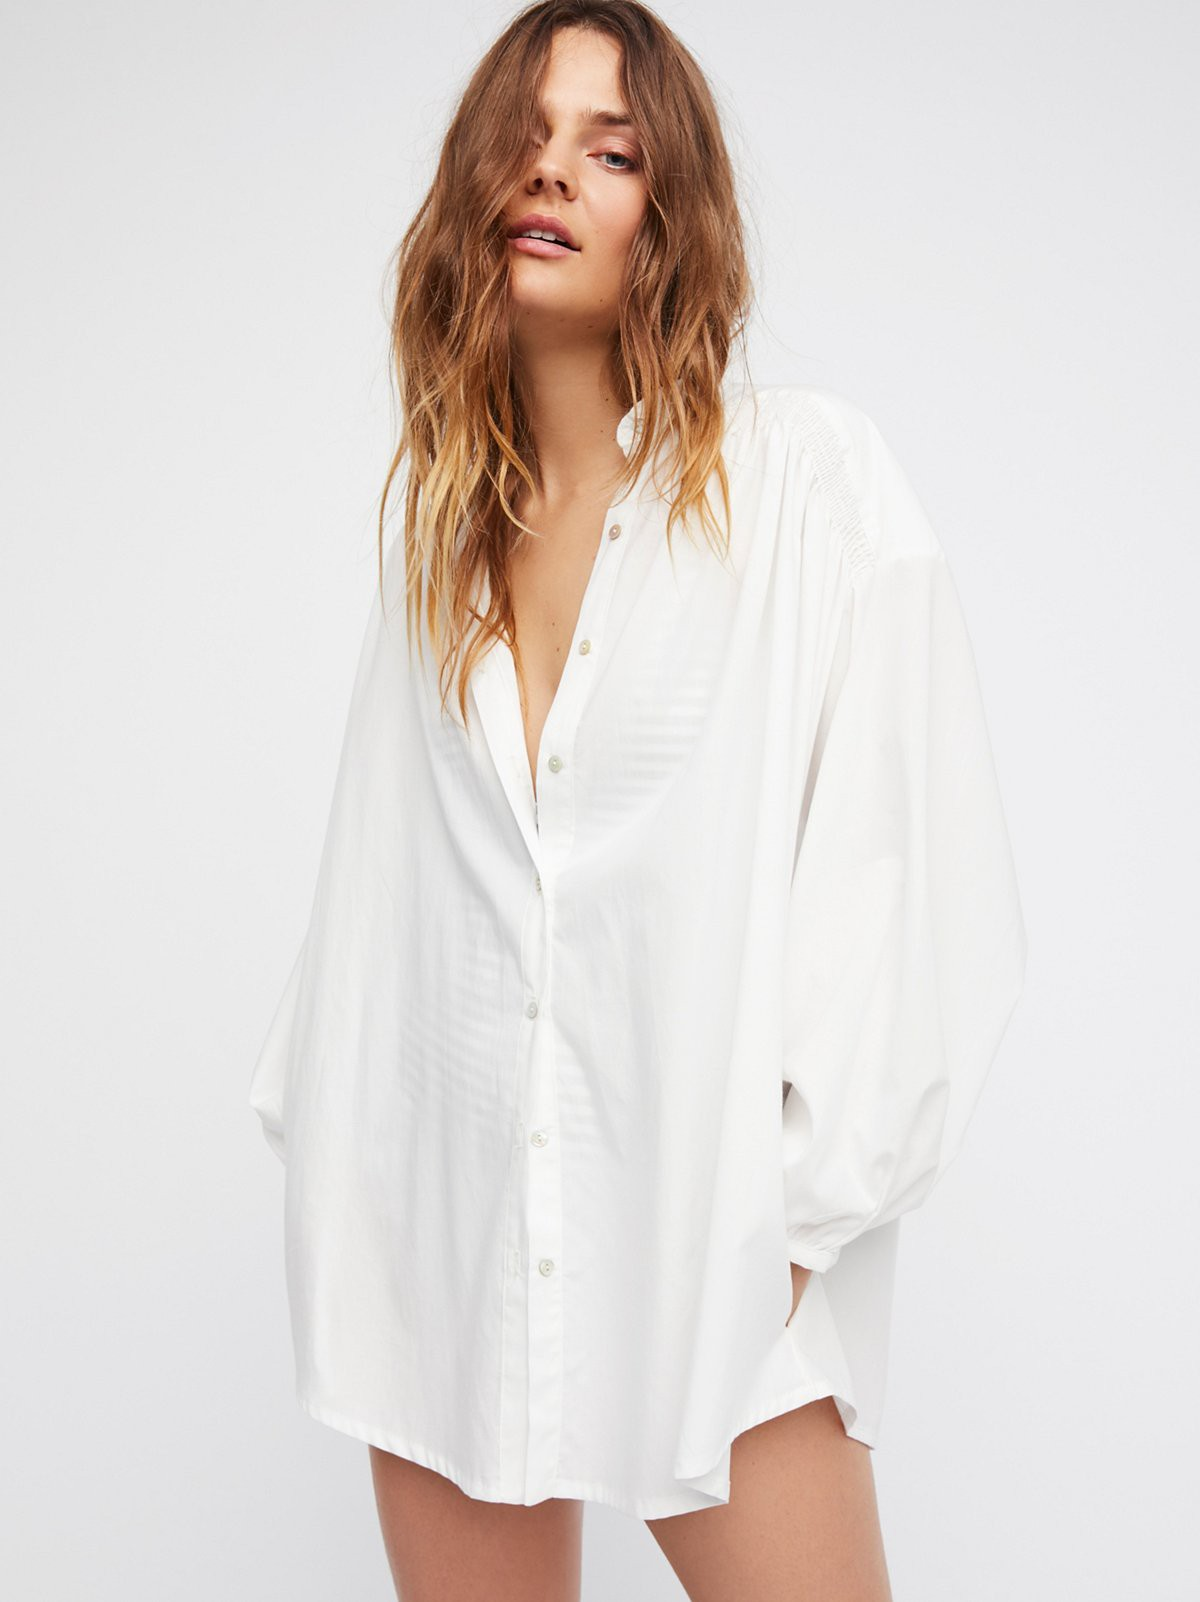 Clothes for Women | Bohemian Clothing & Apparel | Free People